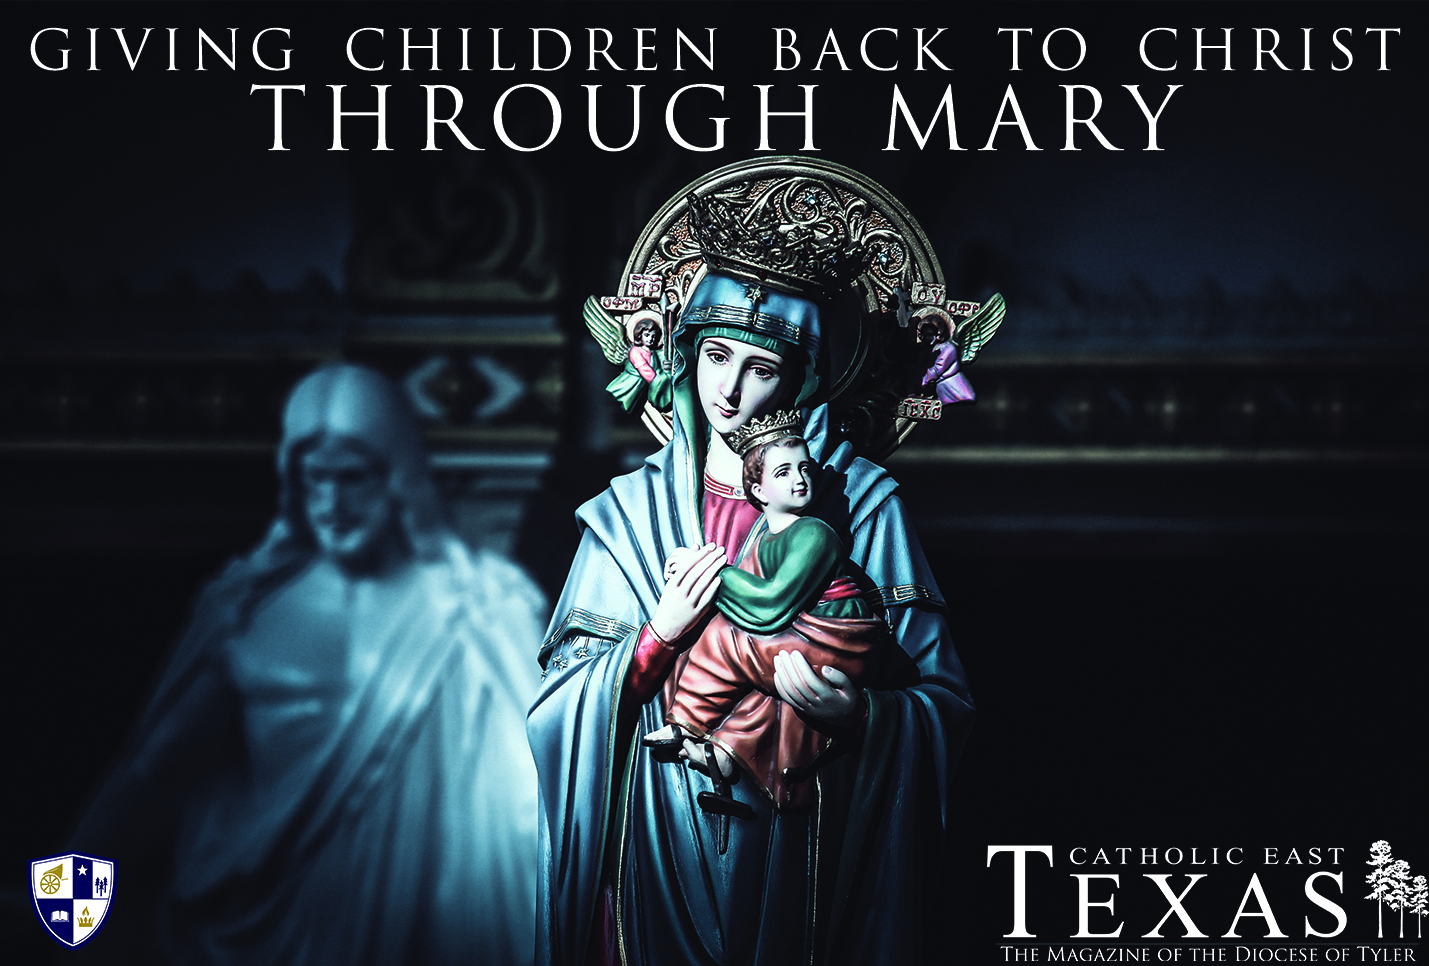 Giving Children Back to Christ Through Mary